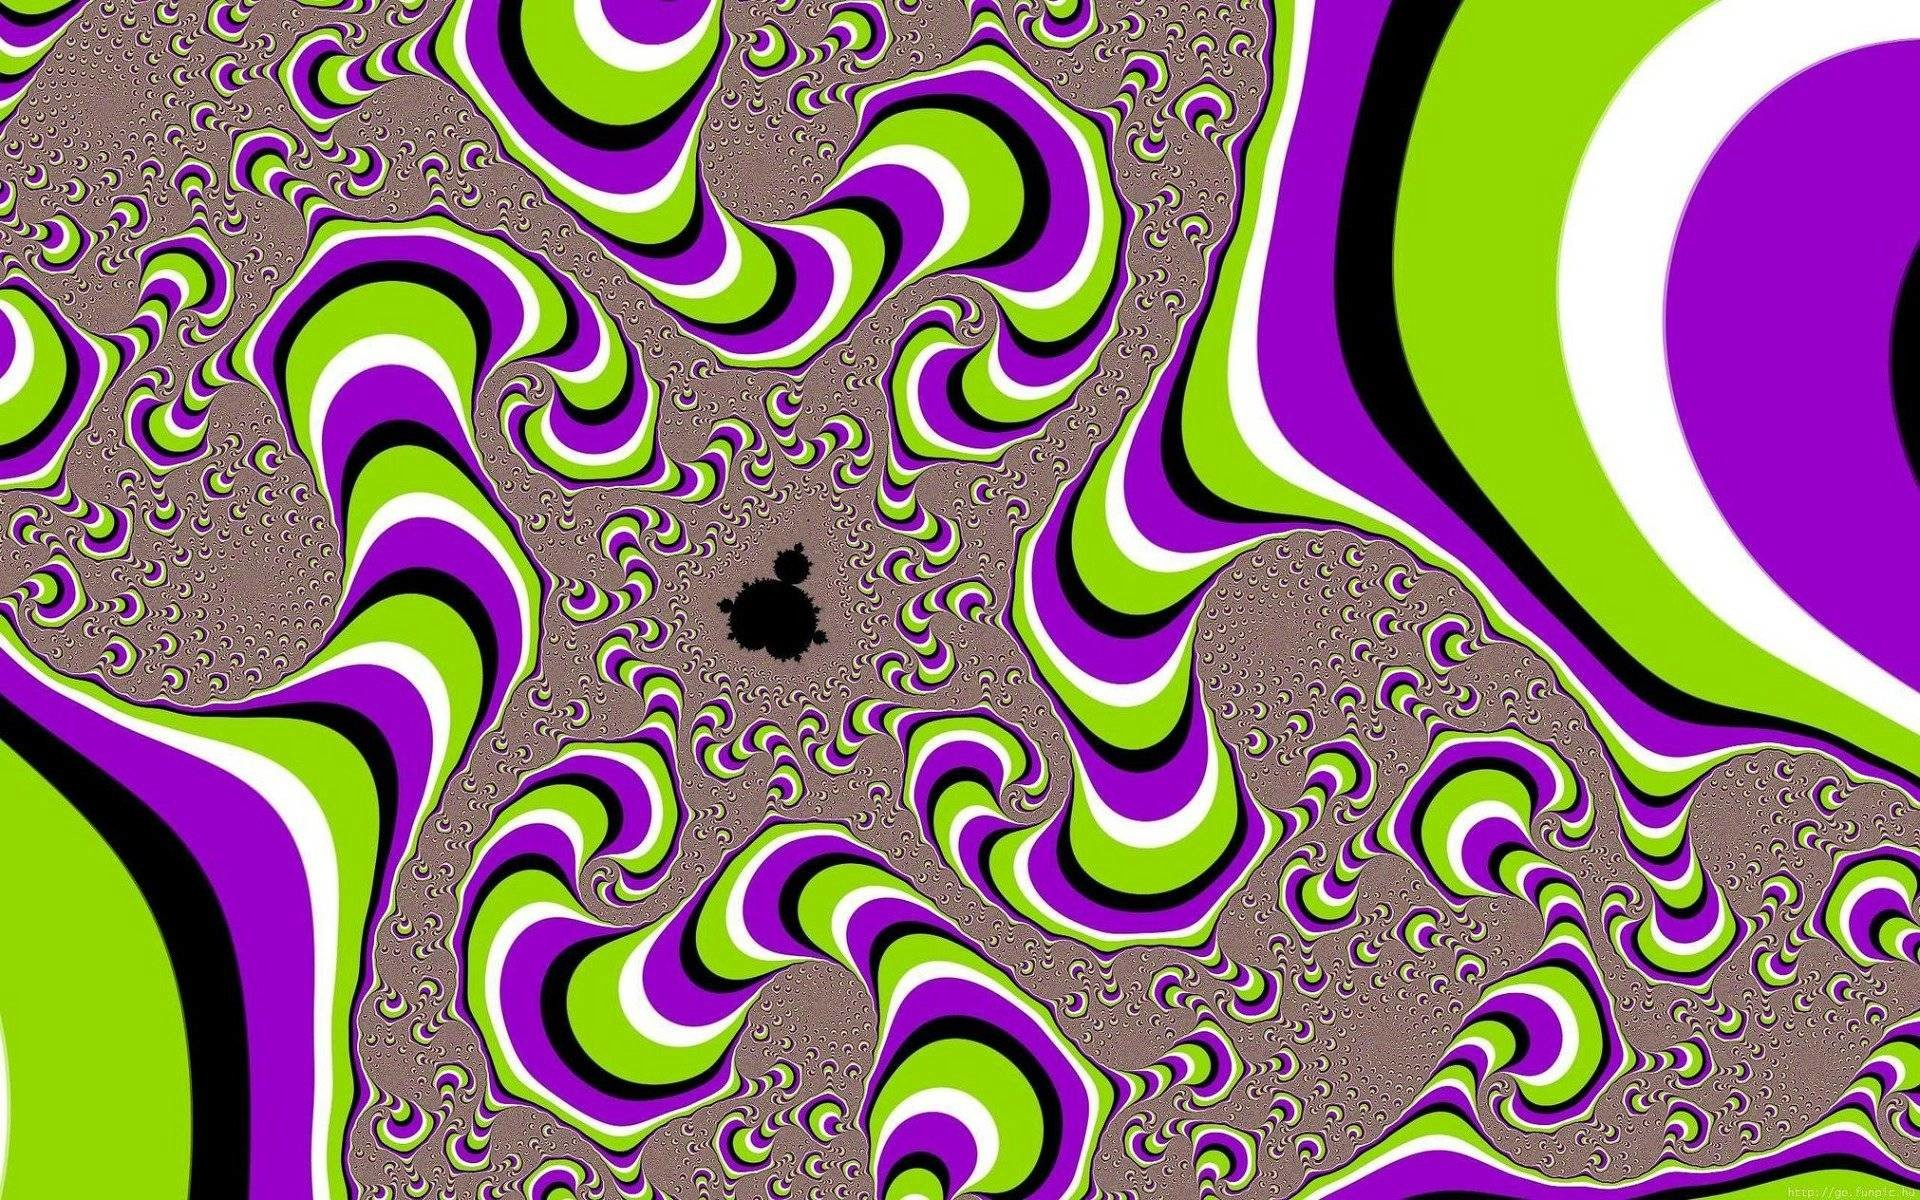 Hd Trippy Backgrounds 77 Pictures